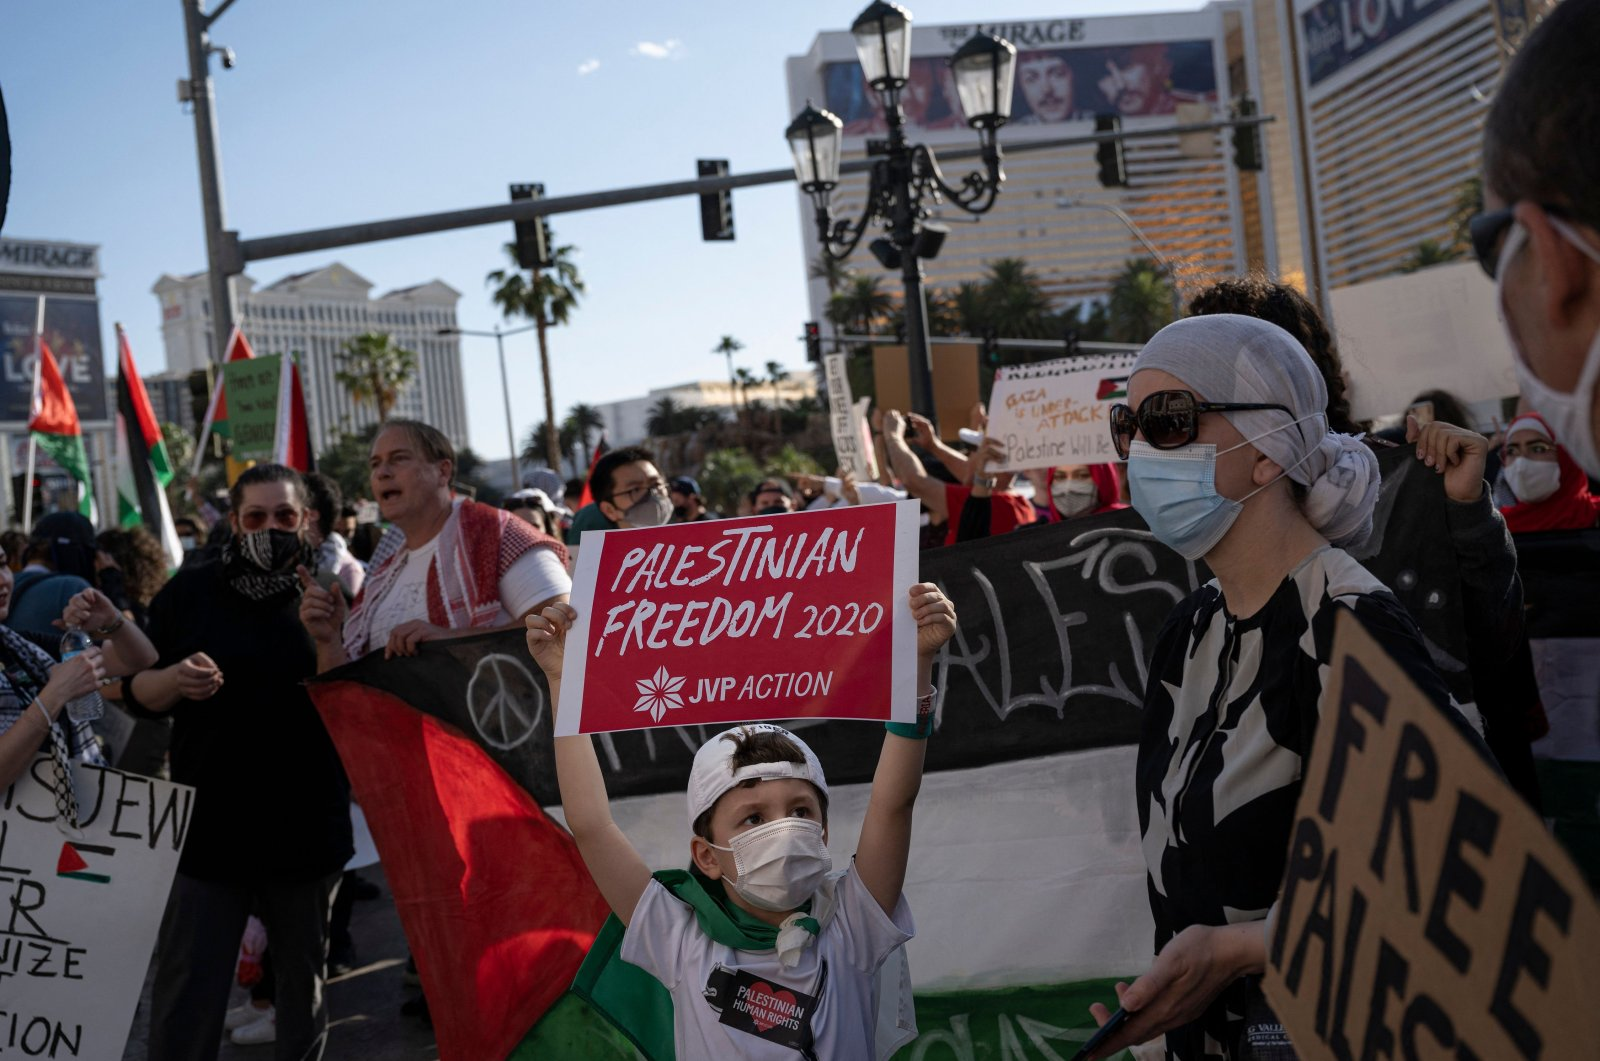 """A child holds up a sign that reads """"Palestinian Freedom"""" as pro-Palestine protesters rally outside The Venetian hotel and casino in Las Vegas, U.S., May 15, 2021. (AFP Photo)"""